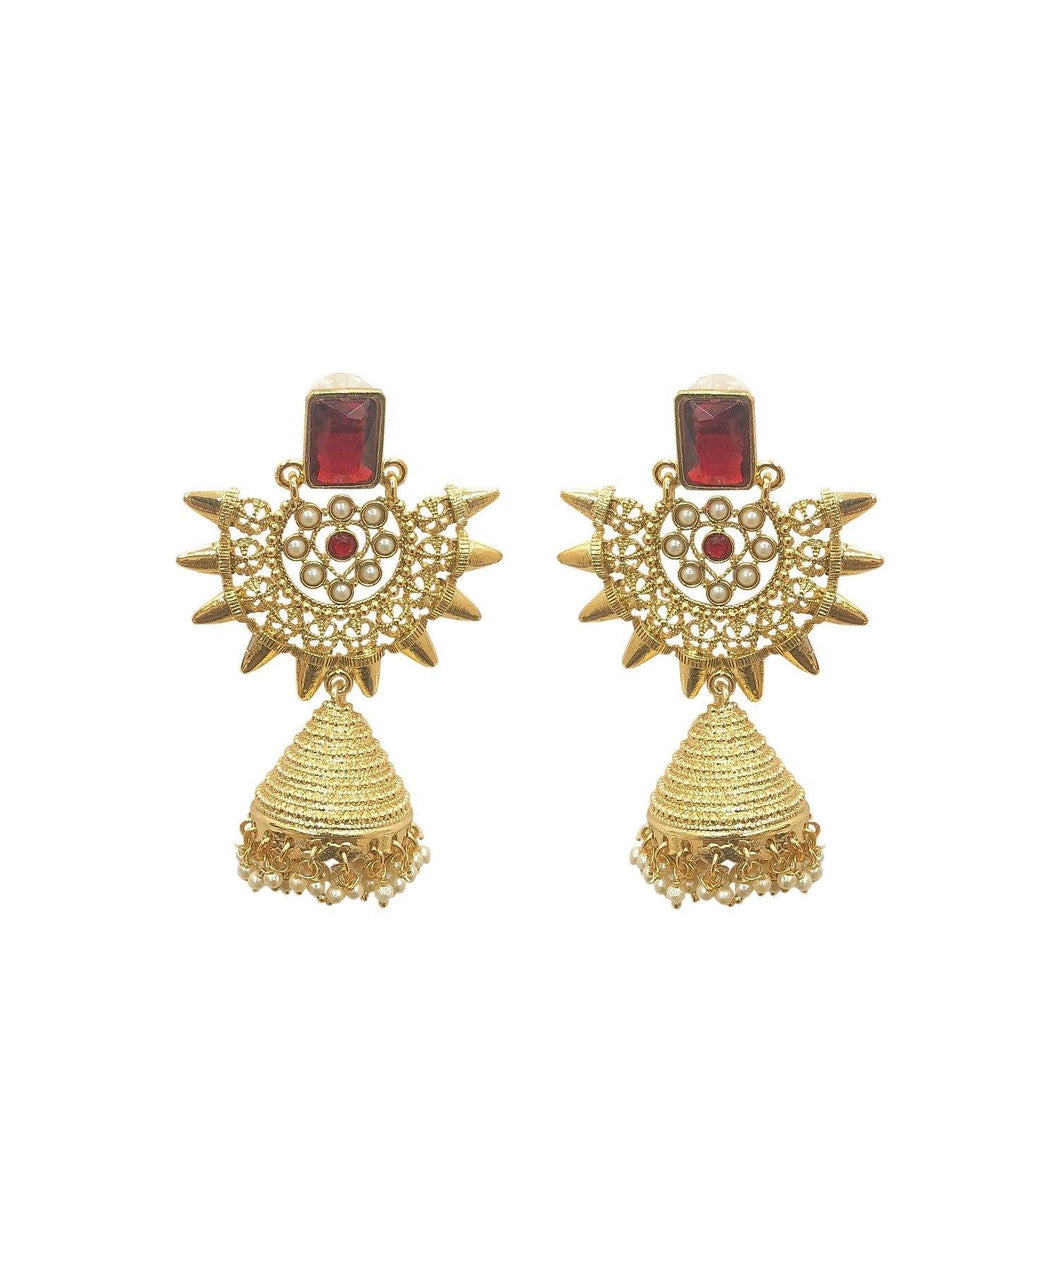 Scarlet Rivet Jhumka Earrings - The Wedding Brigade